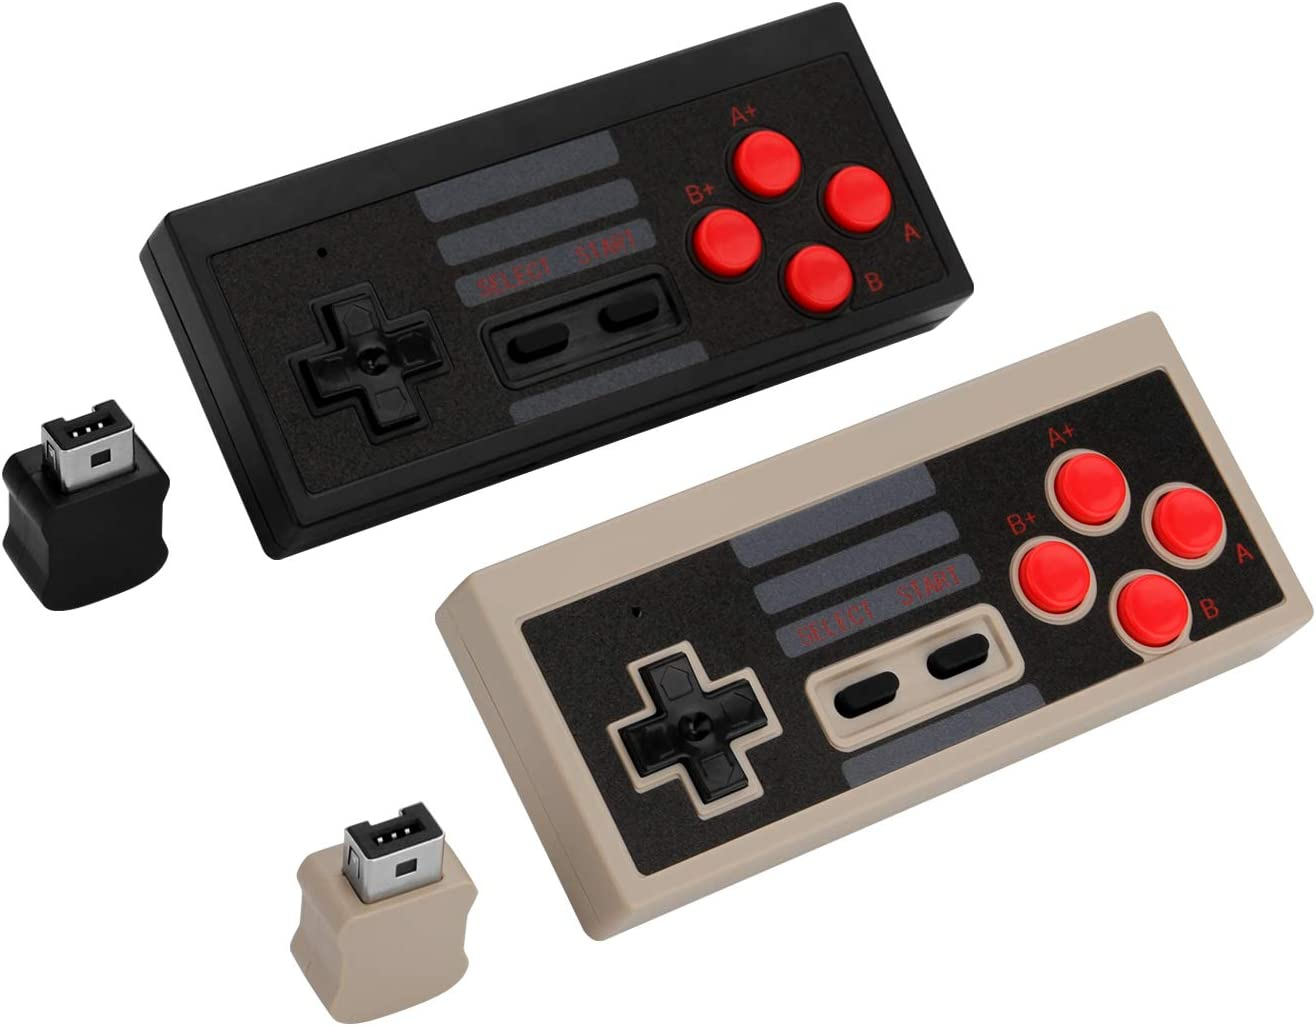 2PCS Wireless Game Controller, AGPtEK 2.4G Wireless Gamepad for NES Classic Edition, Wireless Joypad with 2 Receiver for Classic Gaming System: Computers & Accessories